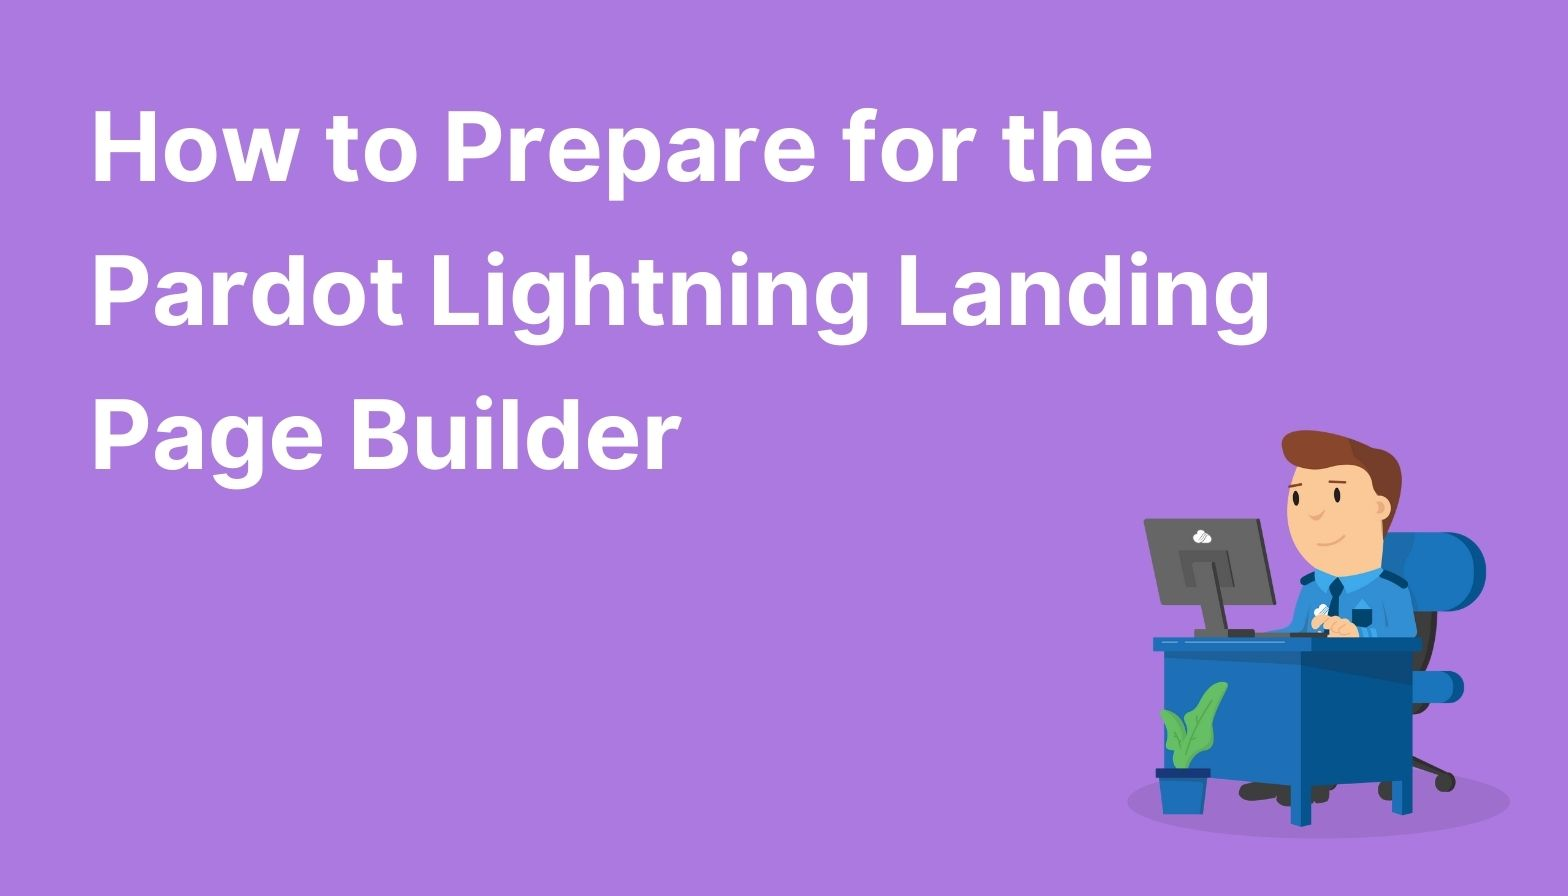 Feature image: How to Prepare for the Pardot Lightning Landing Page Builder